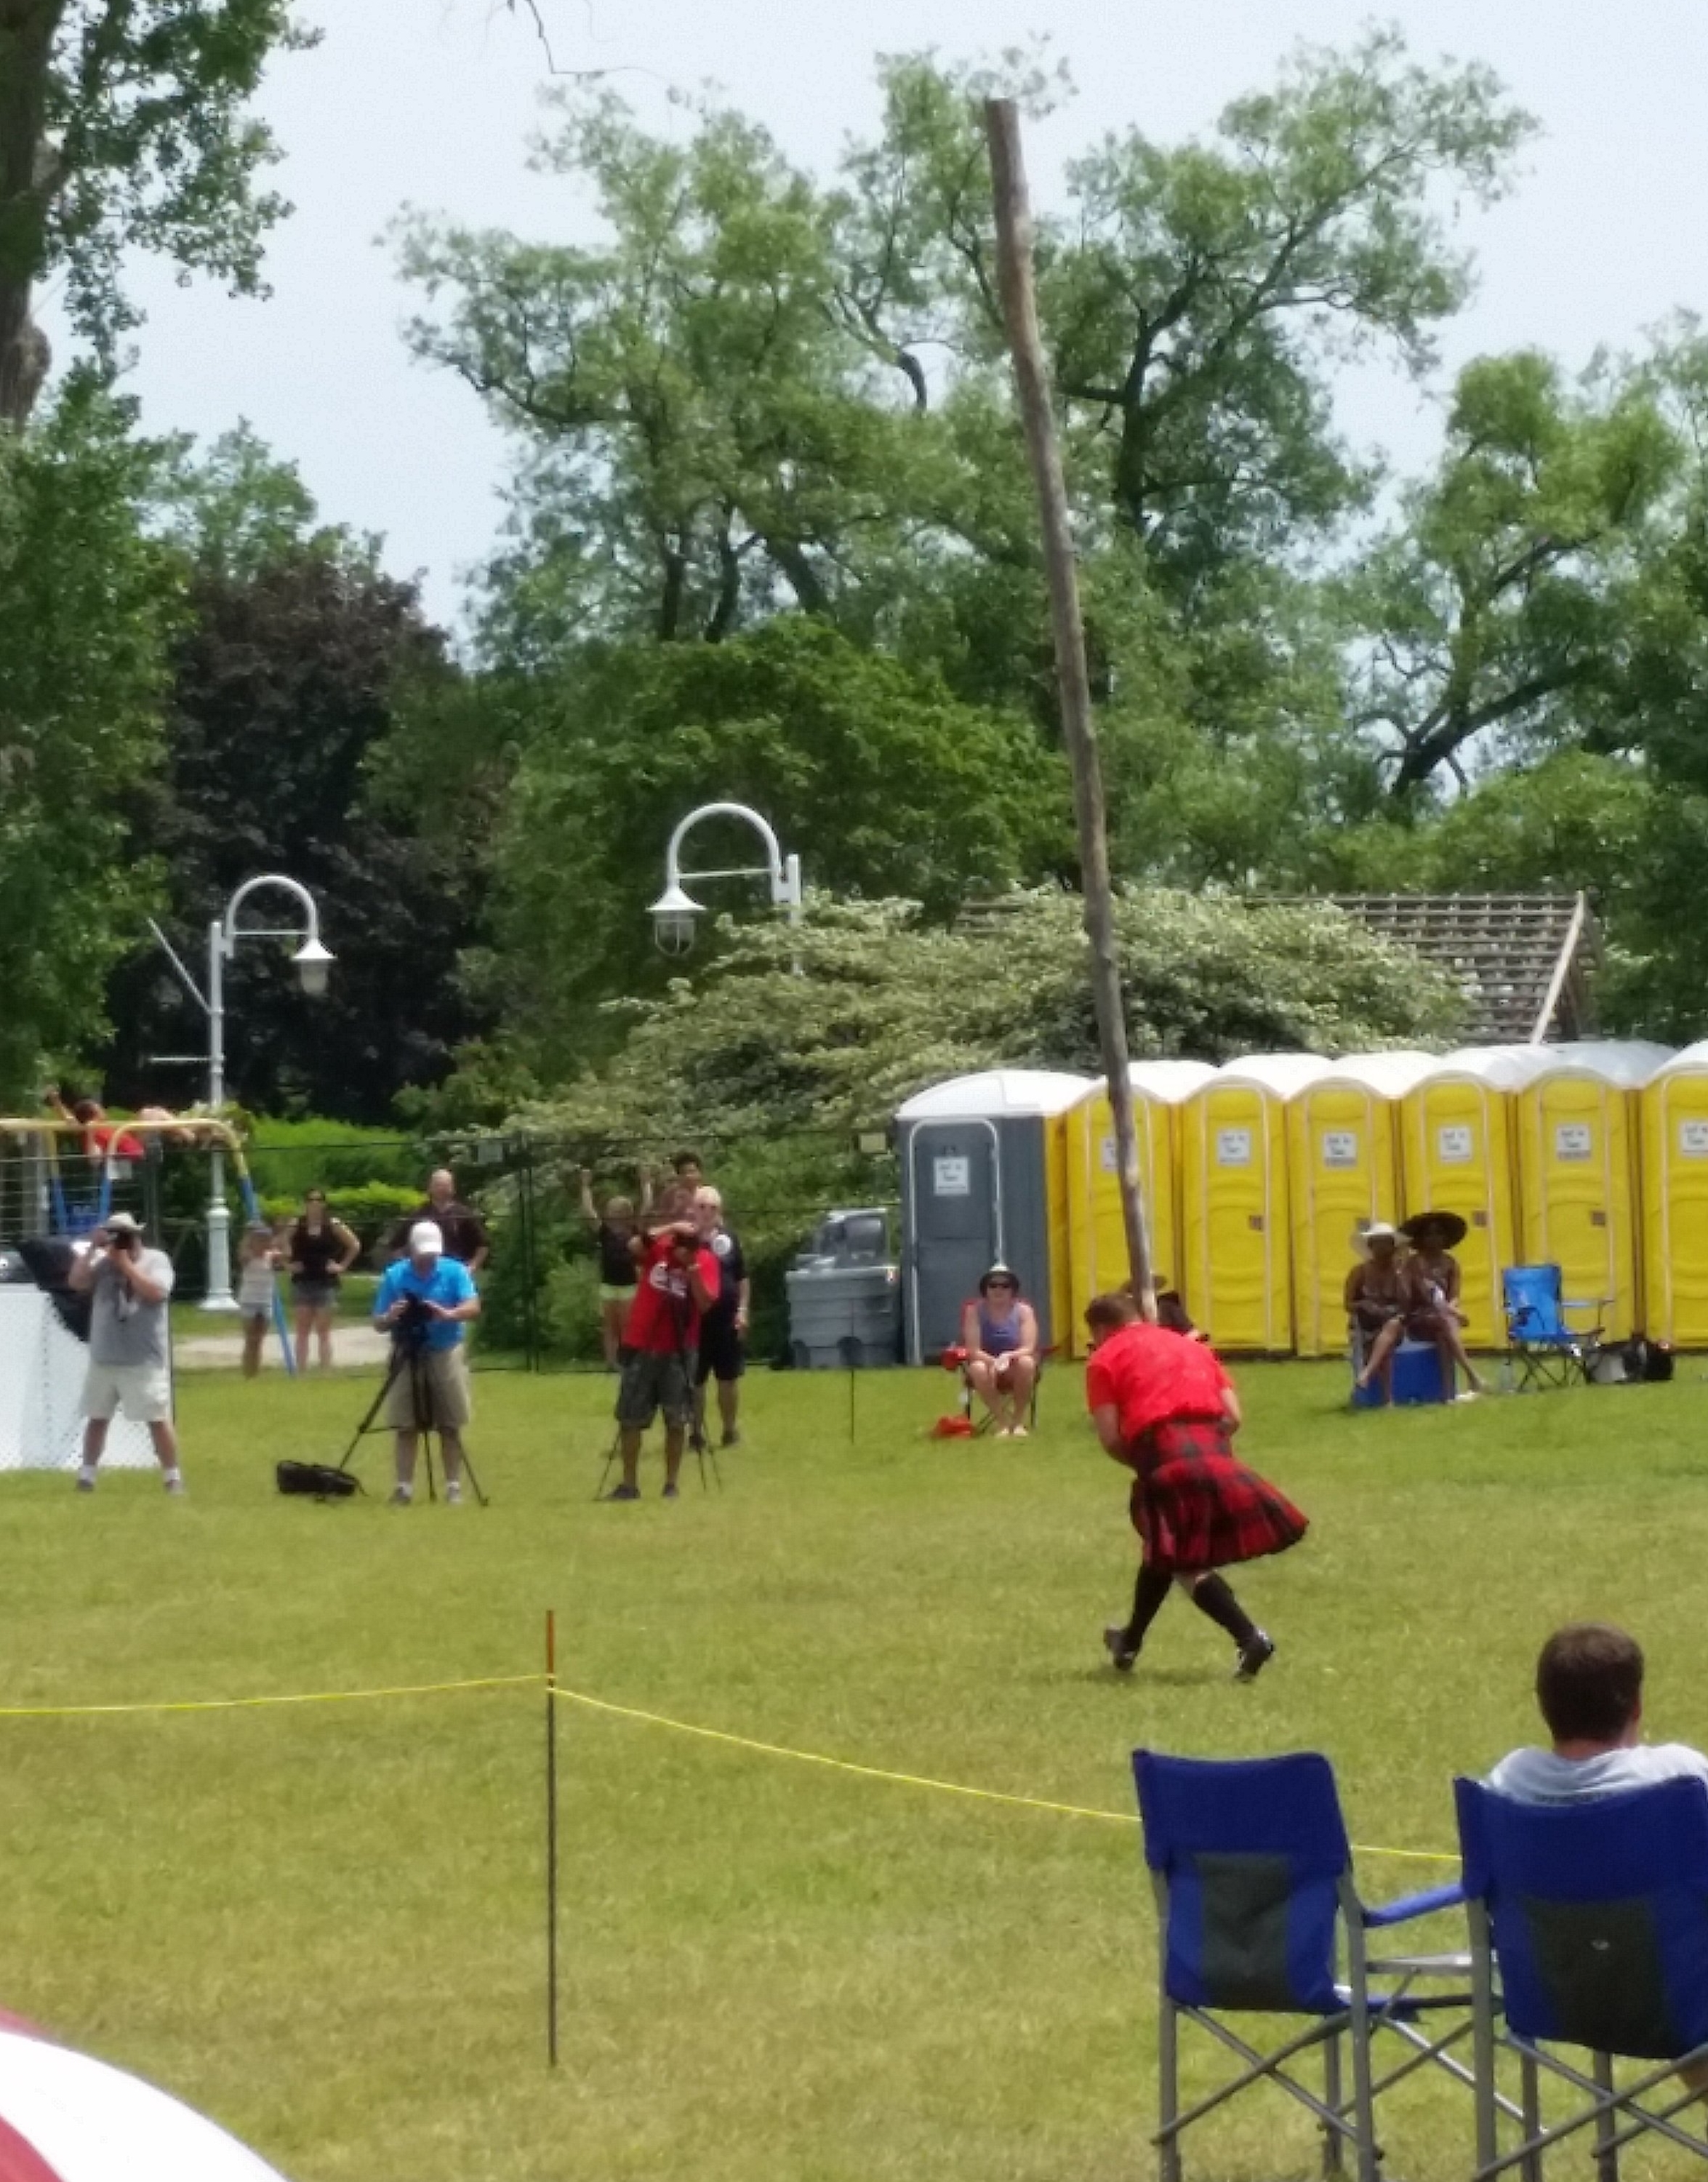 The caber toss competition.